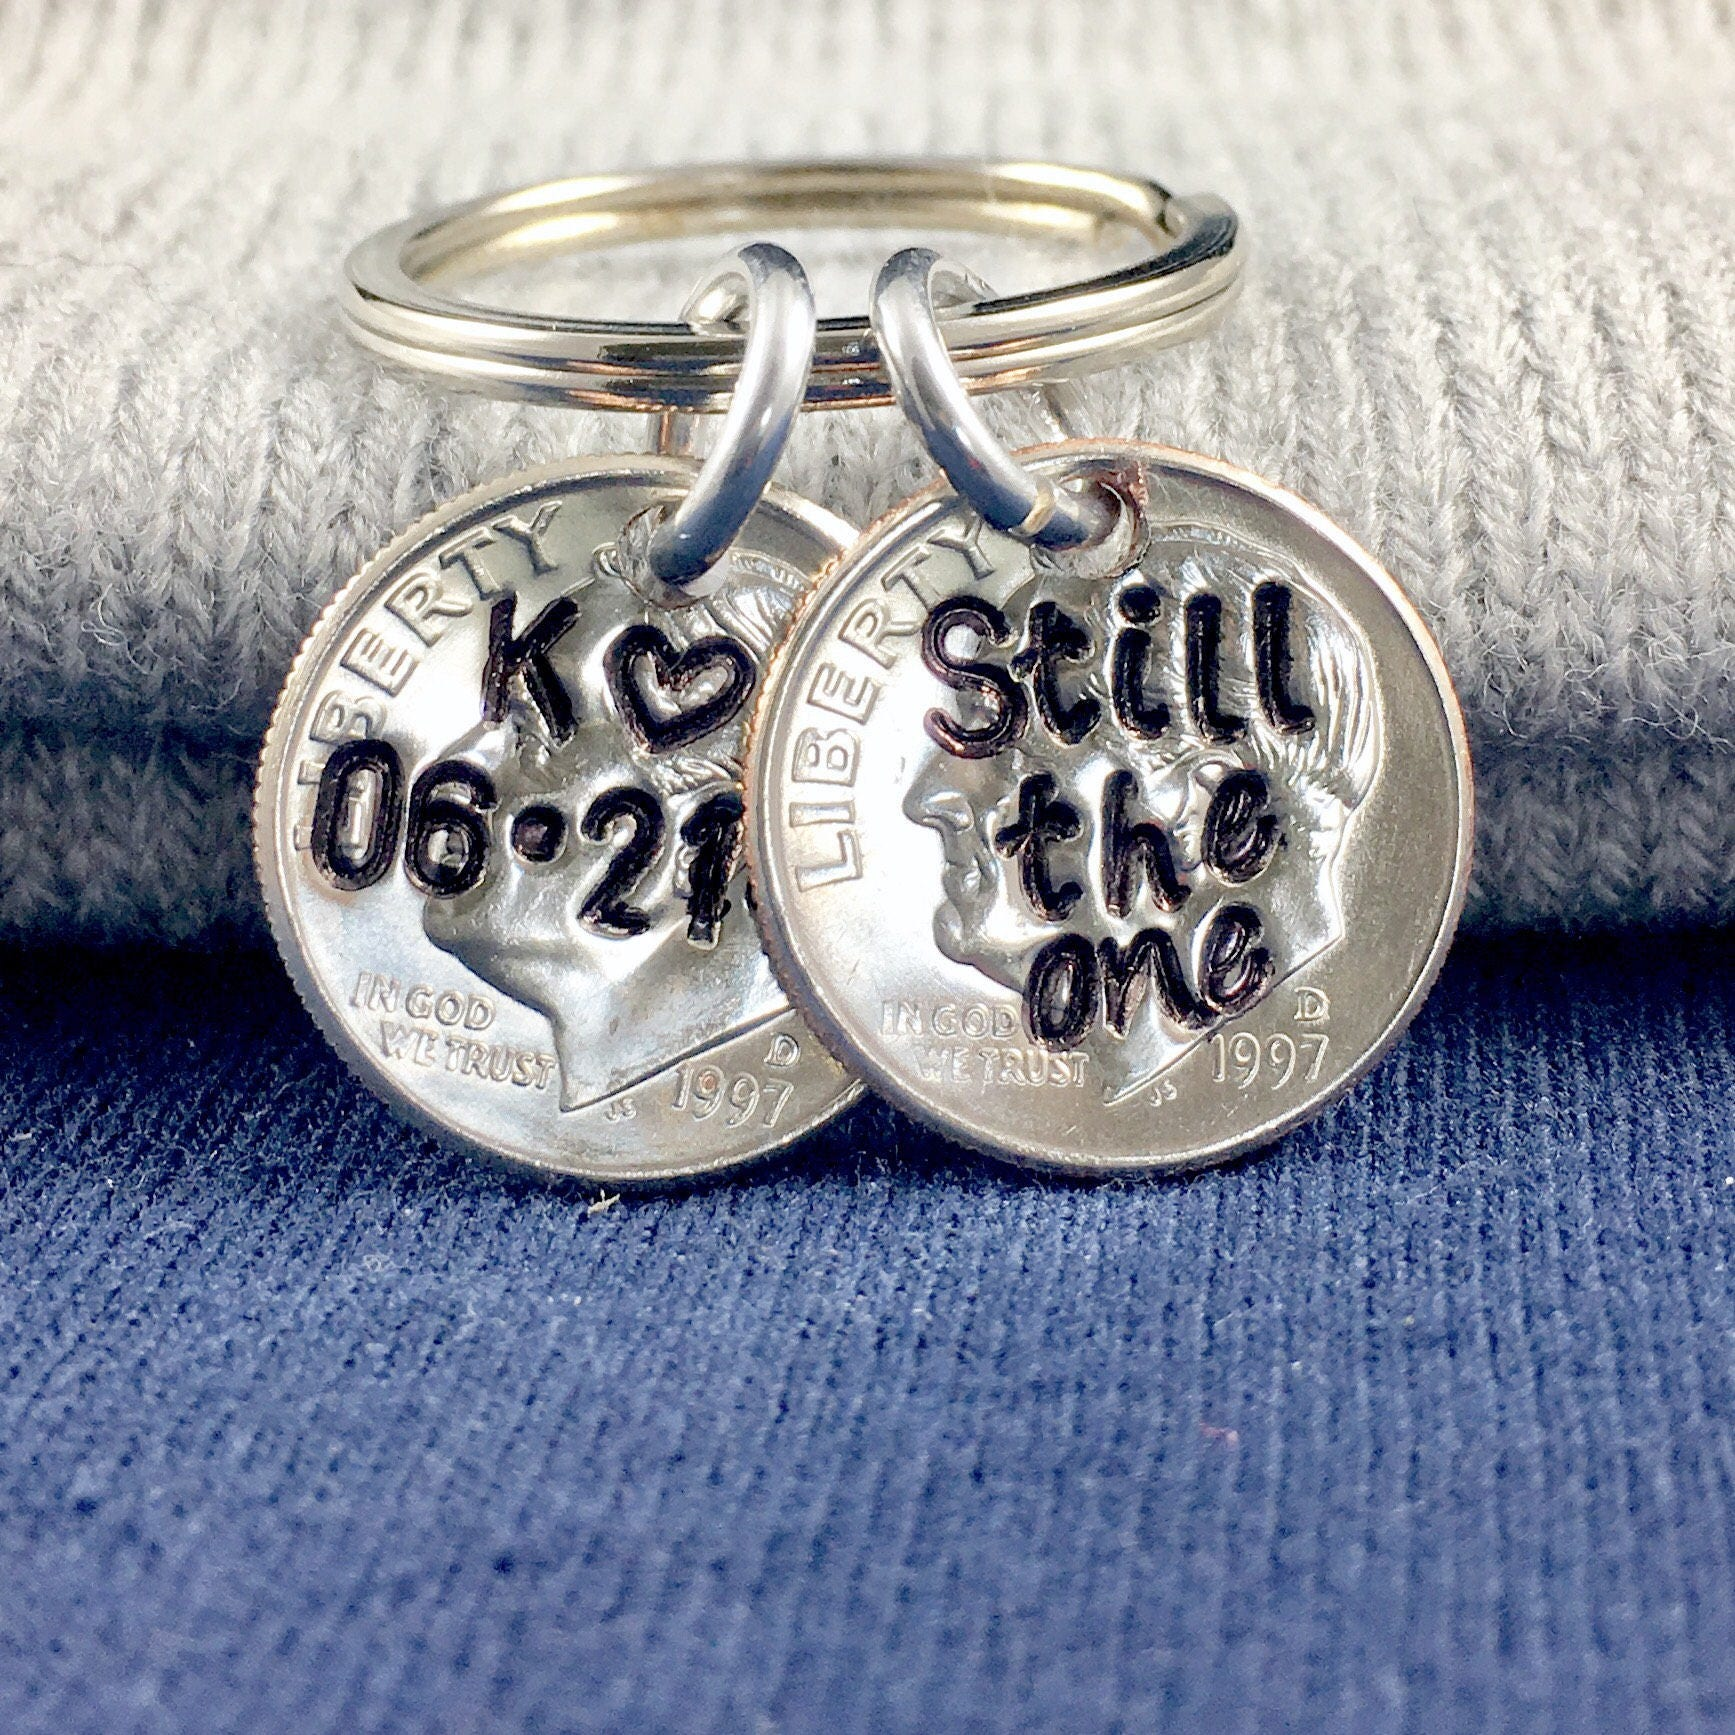 Twentieth Wedding Anniversary Gift: 20th Anniversary Gift For Wife 20 Year Wedding Anniversary